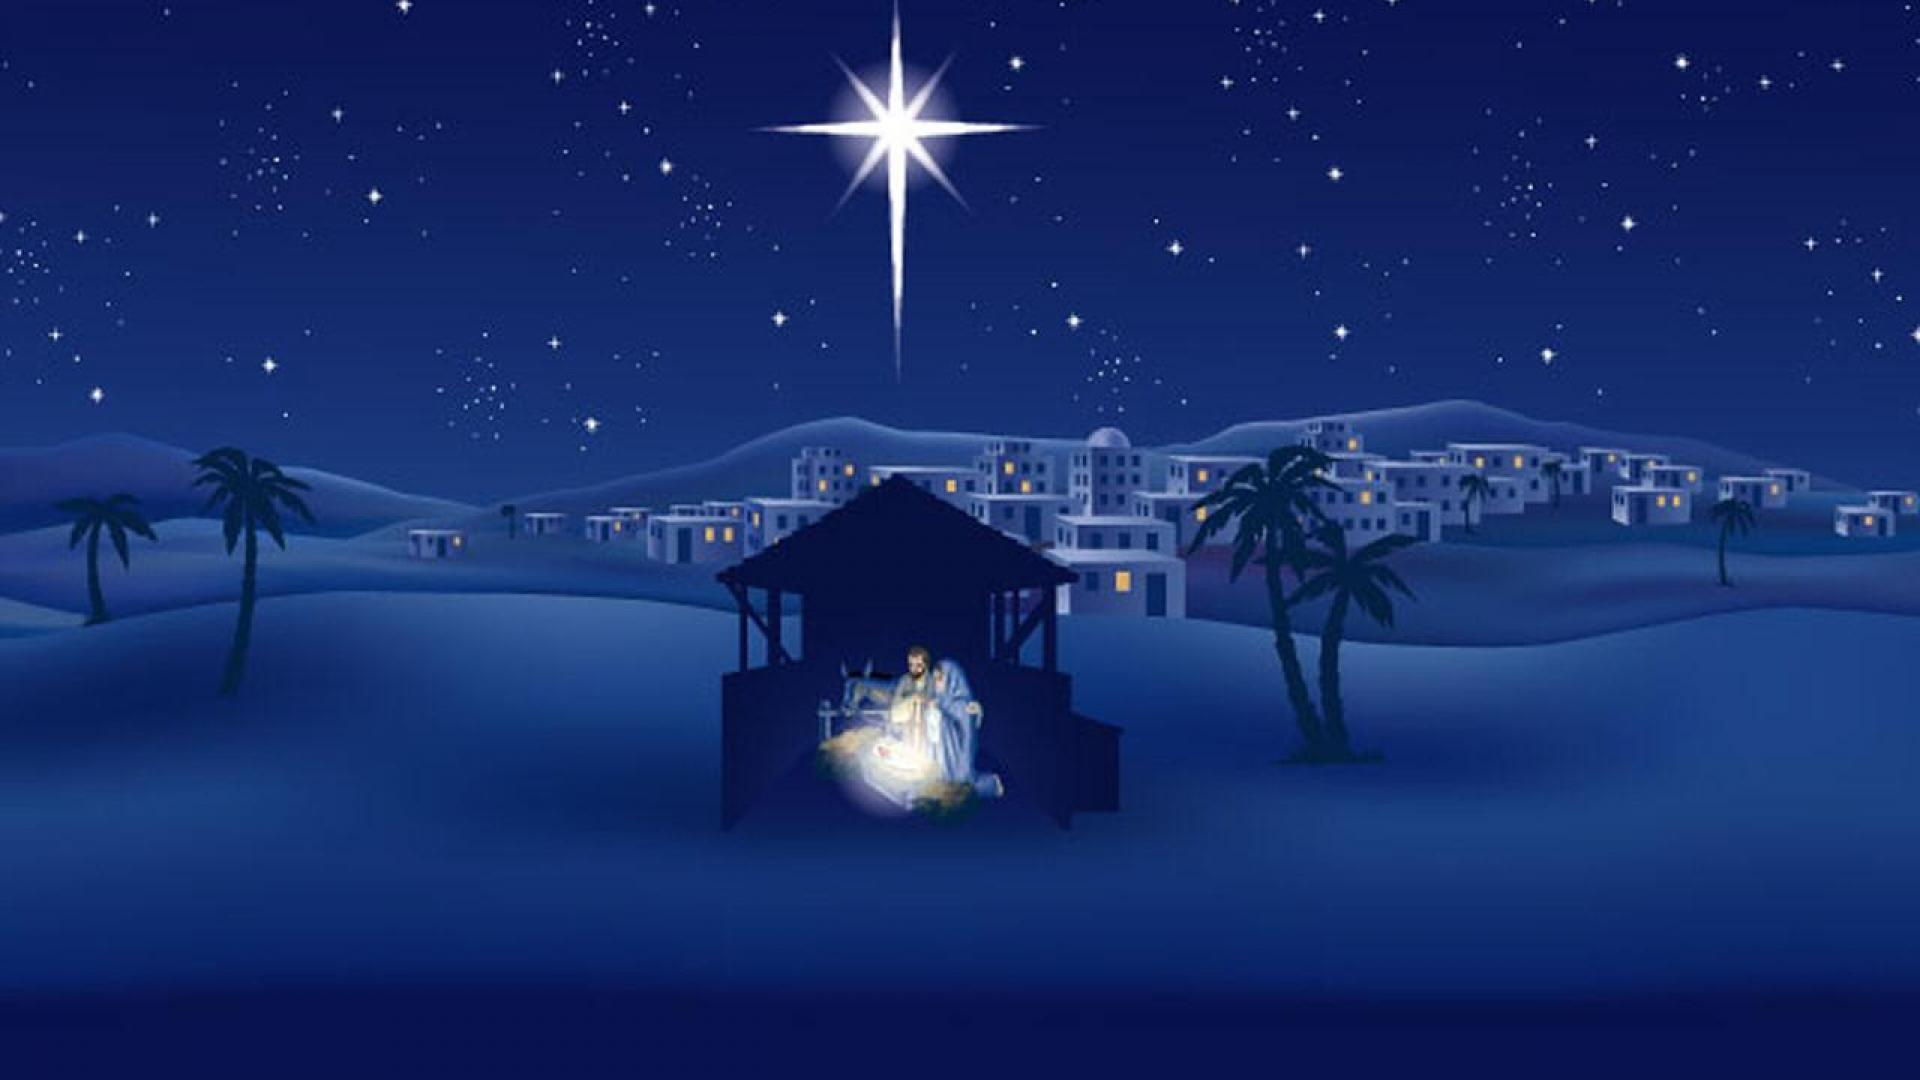 nativity wallpaper HD 1920x1080